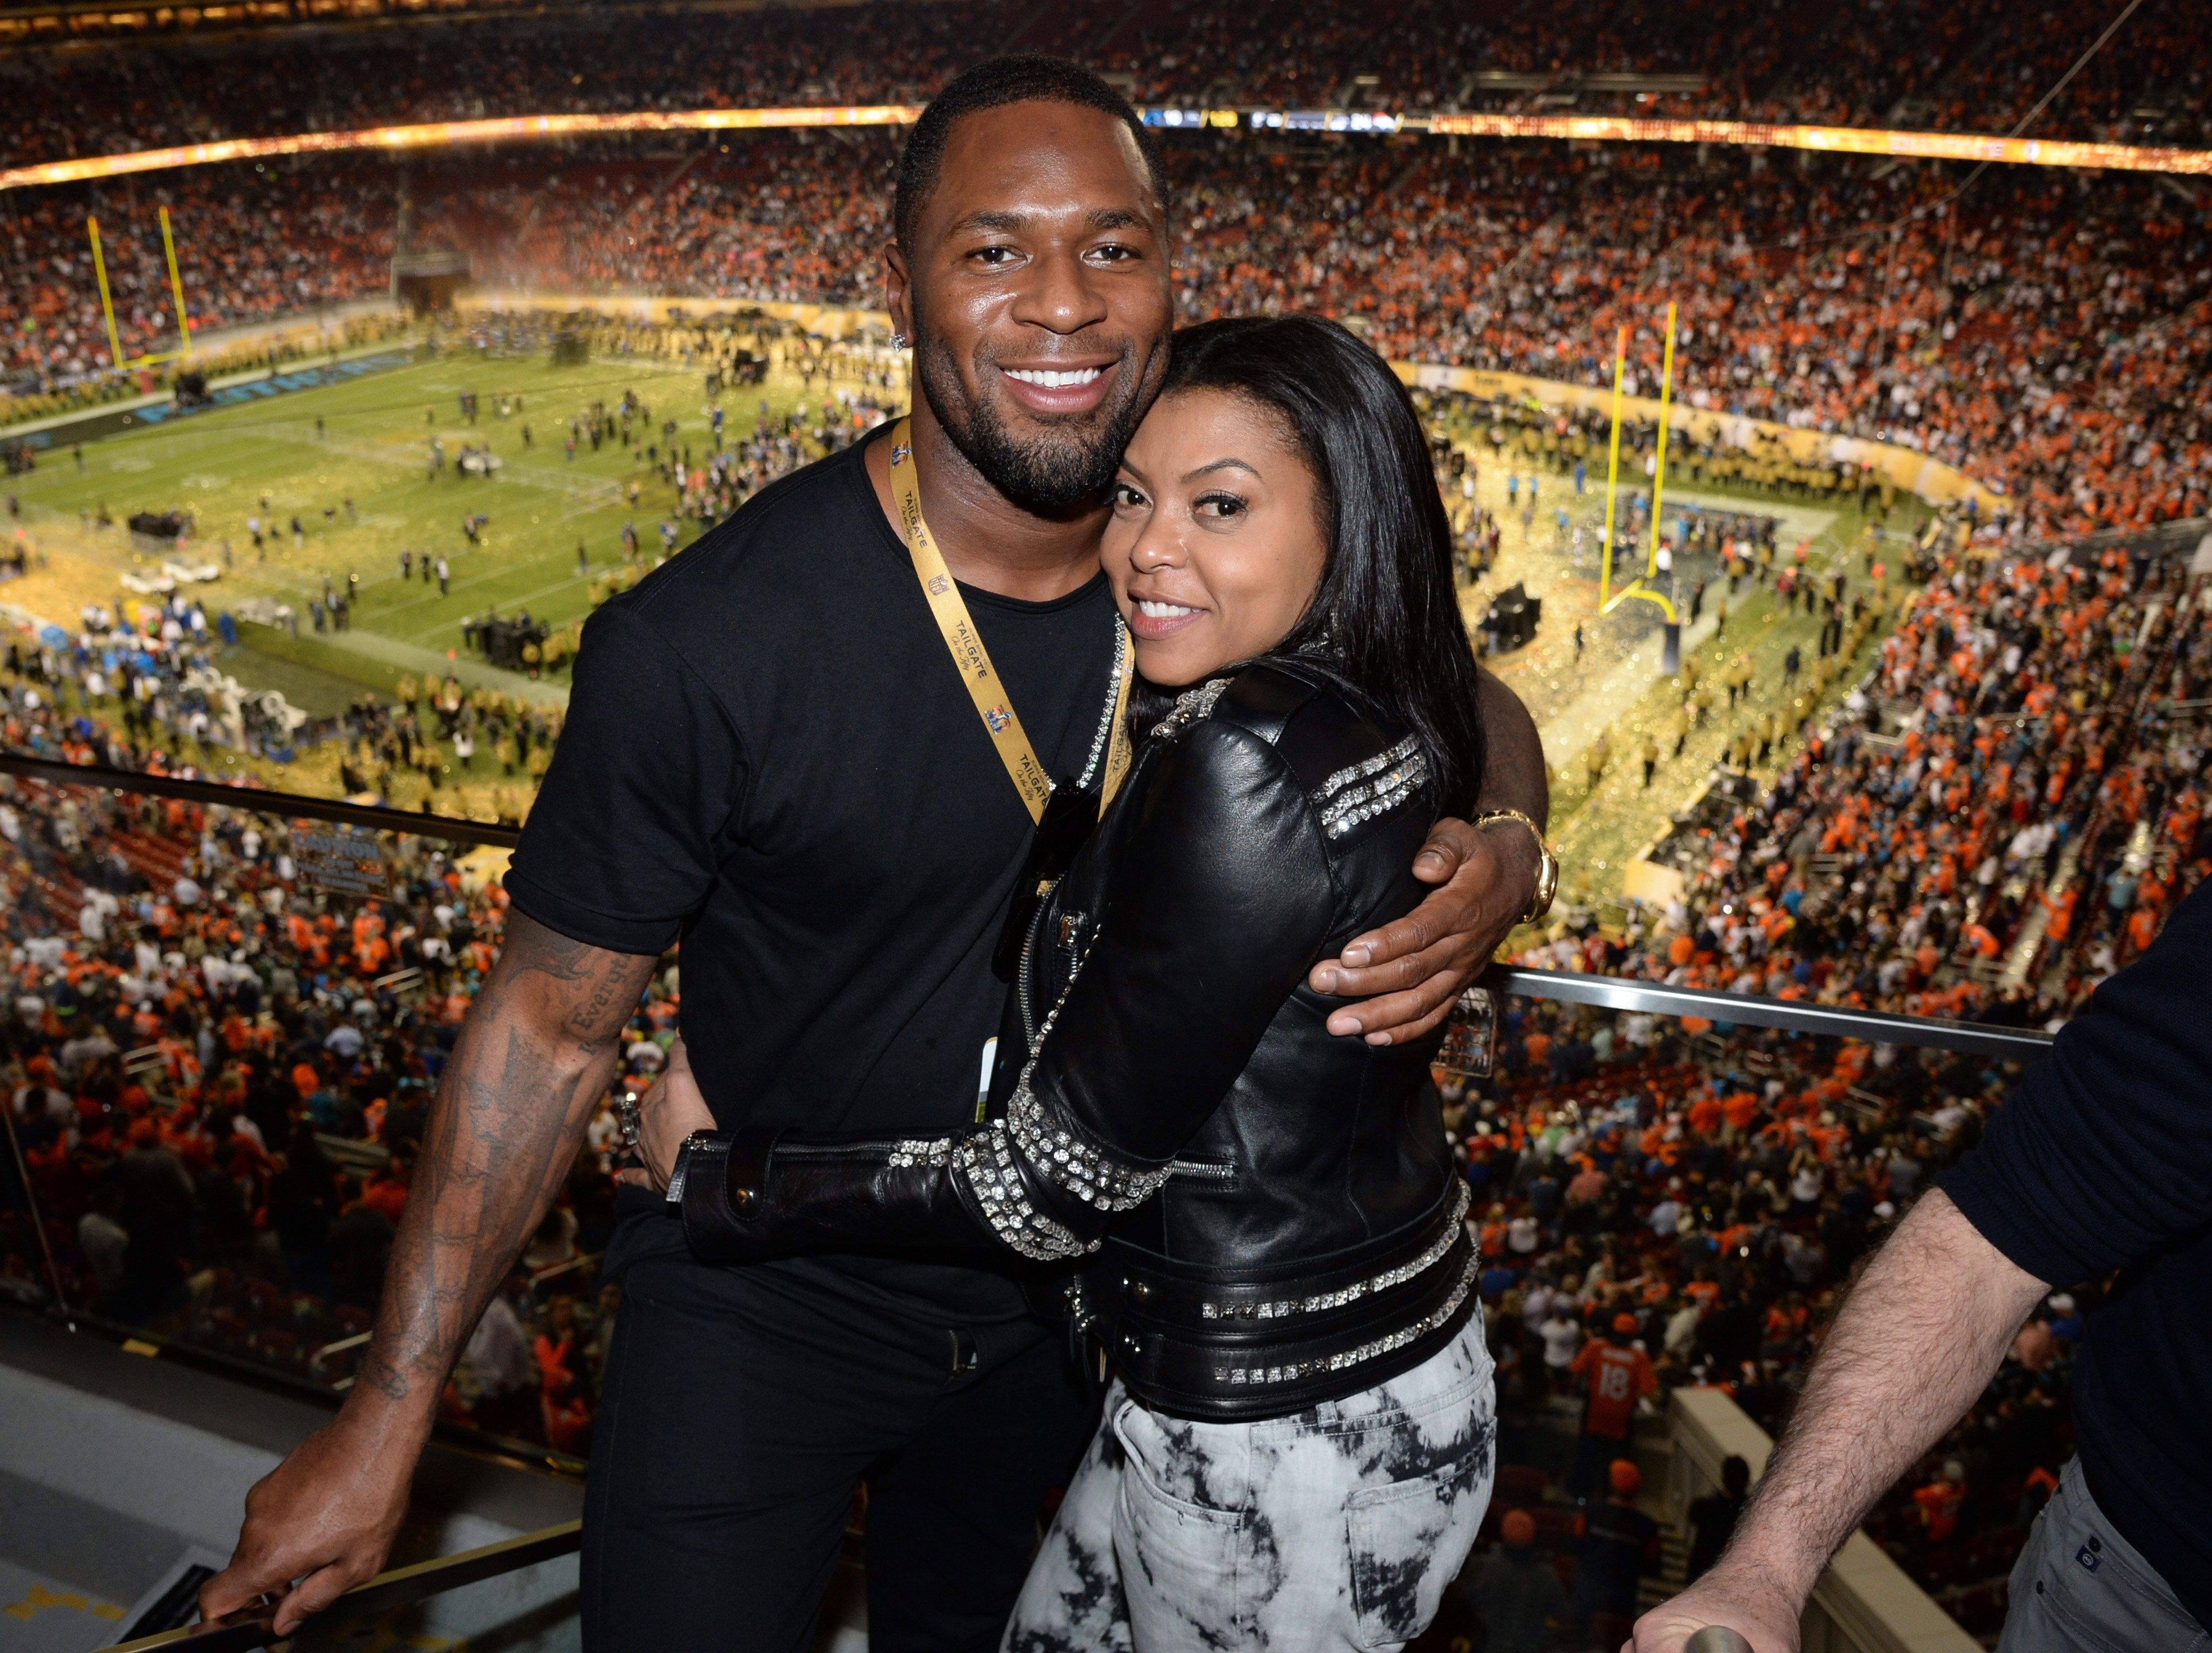 Kelvin Hayden and Taraji P. Henson attend Super Bowl 50 in February 2016.